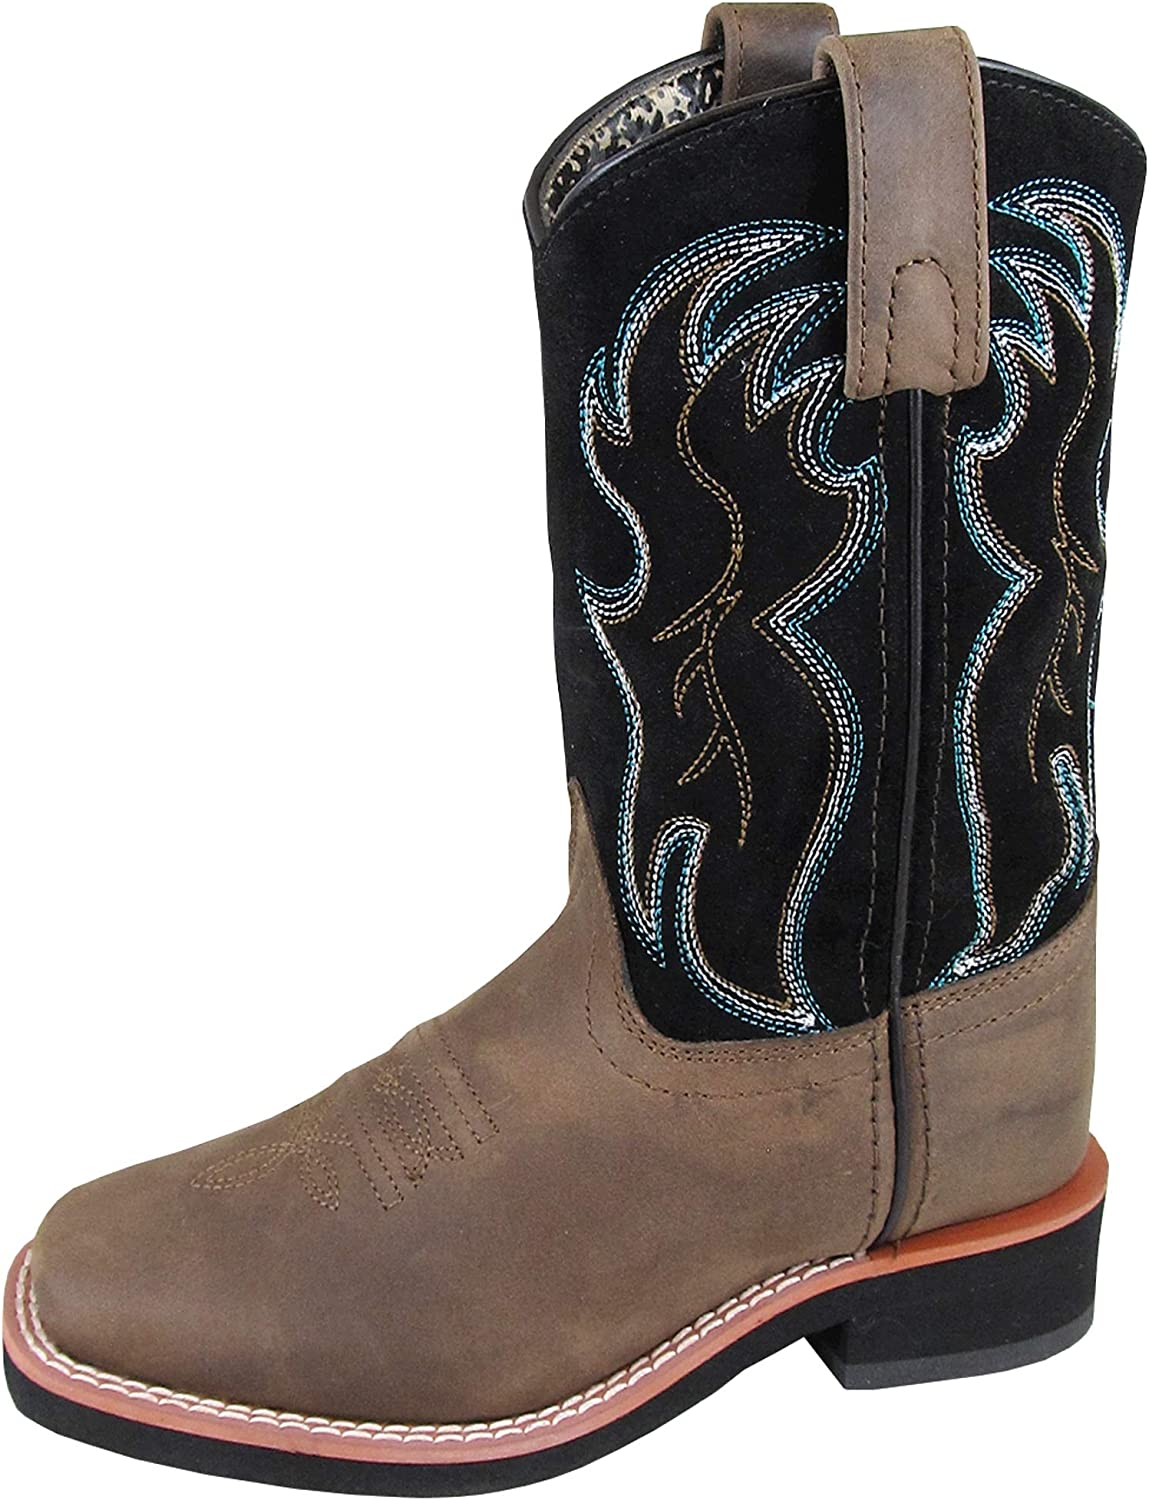 Smoky Mountain Youth Unisex Alex Brown//Black Leather Cowboy Boots 4.5 D